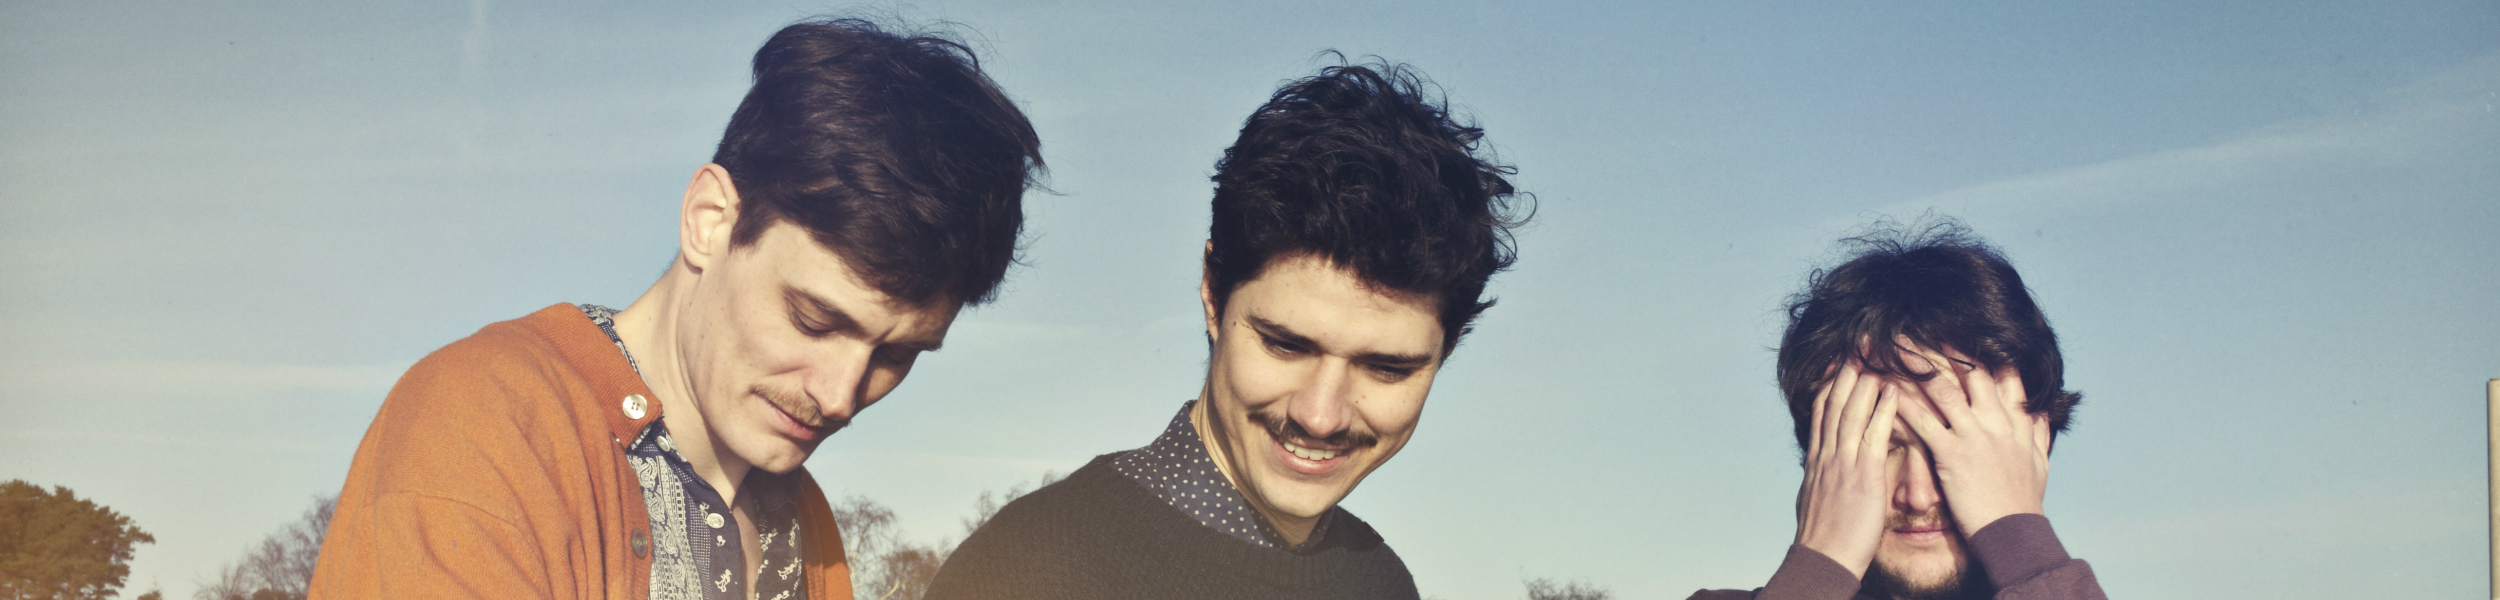 Efterklang - Efterklang Release 'I Was Playing Drums' this week